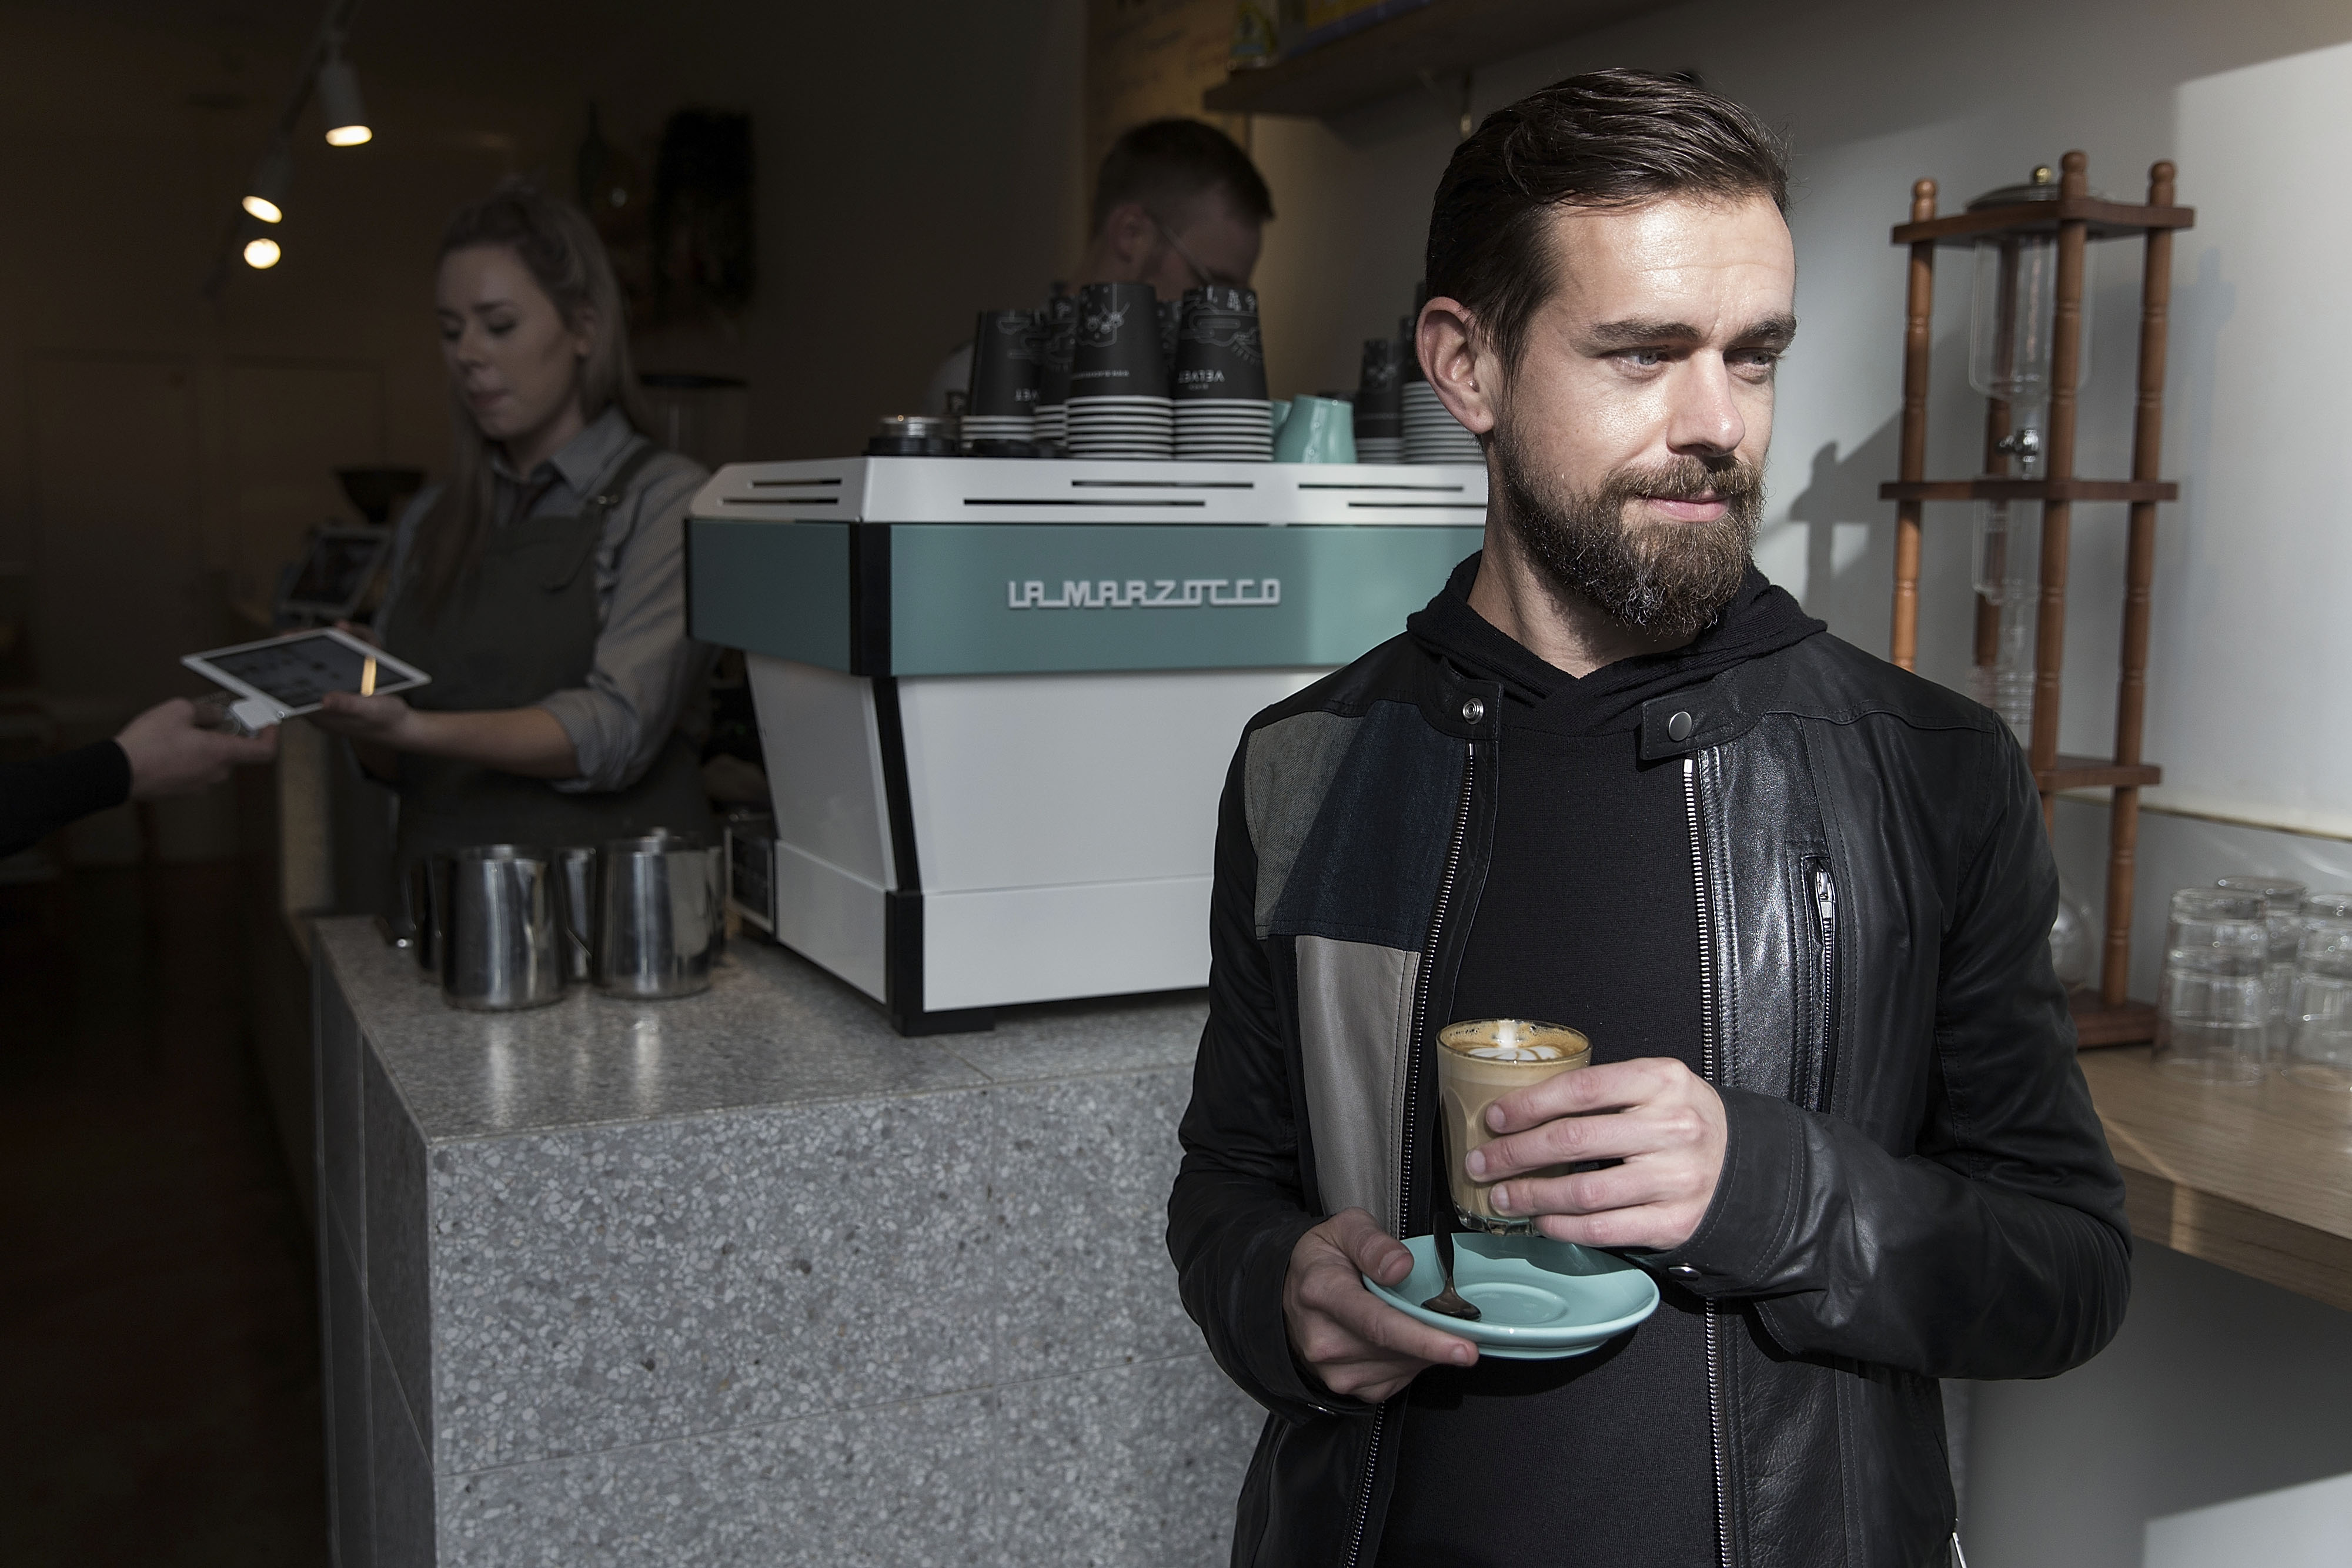 Jack Dorsey, CEO of Square and Twitter